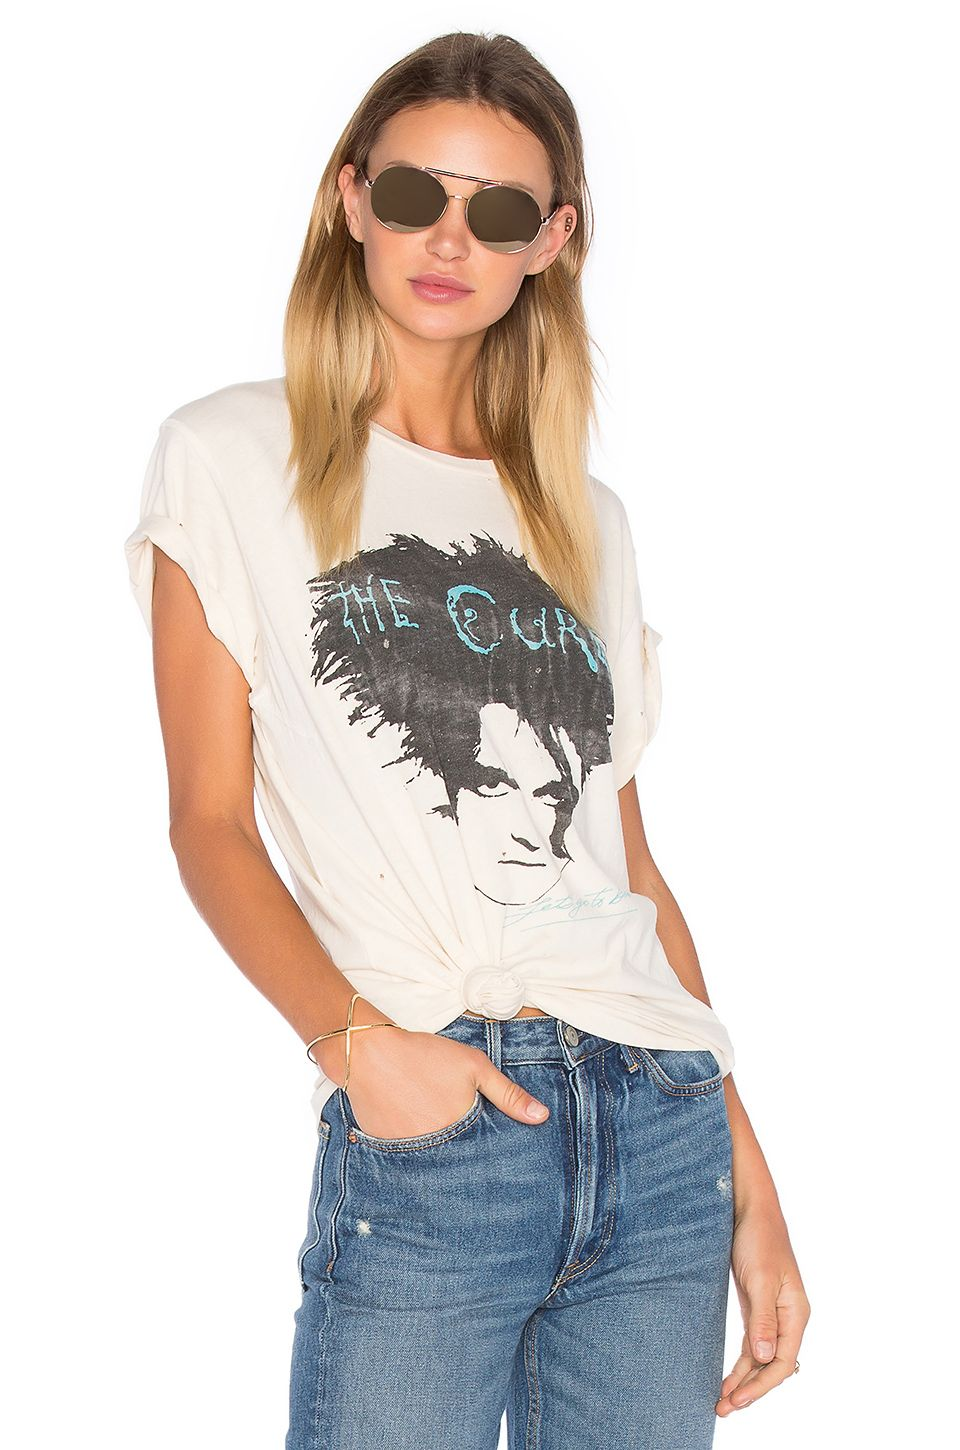 64a87aee97a2 Madeworn The Cure Tee in Dirty White   Graphic Design: Vintage Band ...